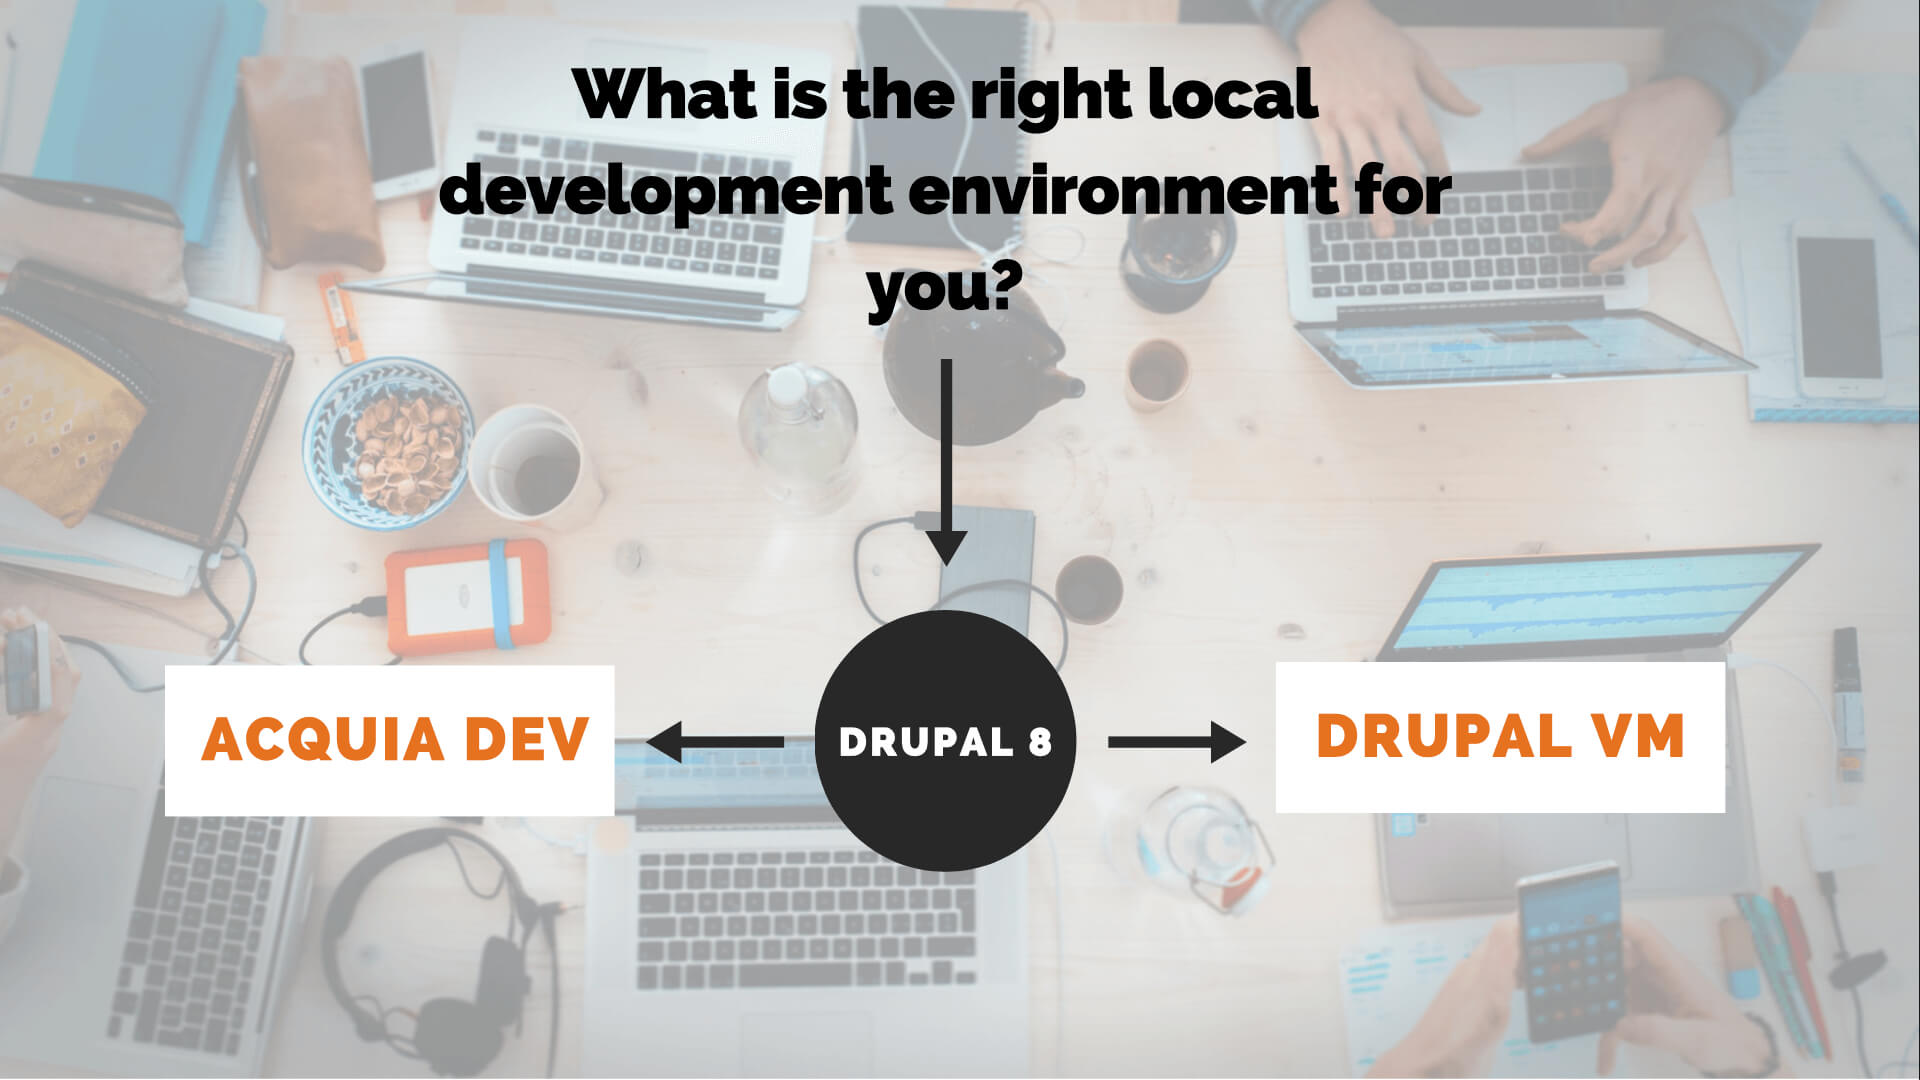 What's the right local development environment to use for you? Acquia Dev Desktop or Drupal VM for Drupal 8?